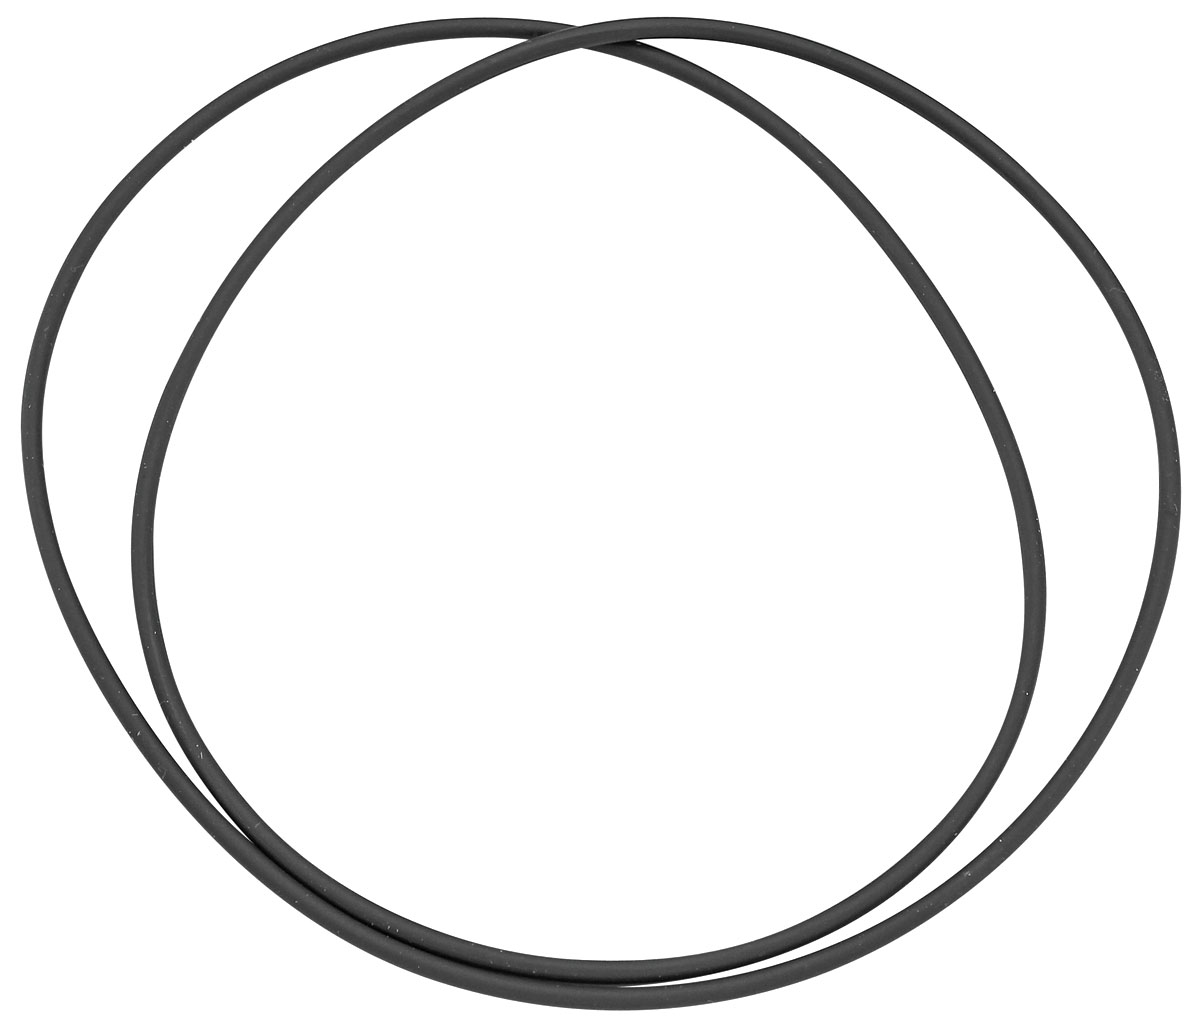 Gasket, Diff Cover, 2004-06 Cadillac XLR, Front